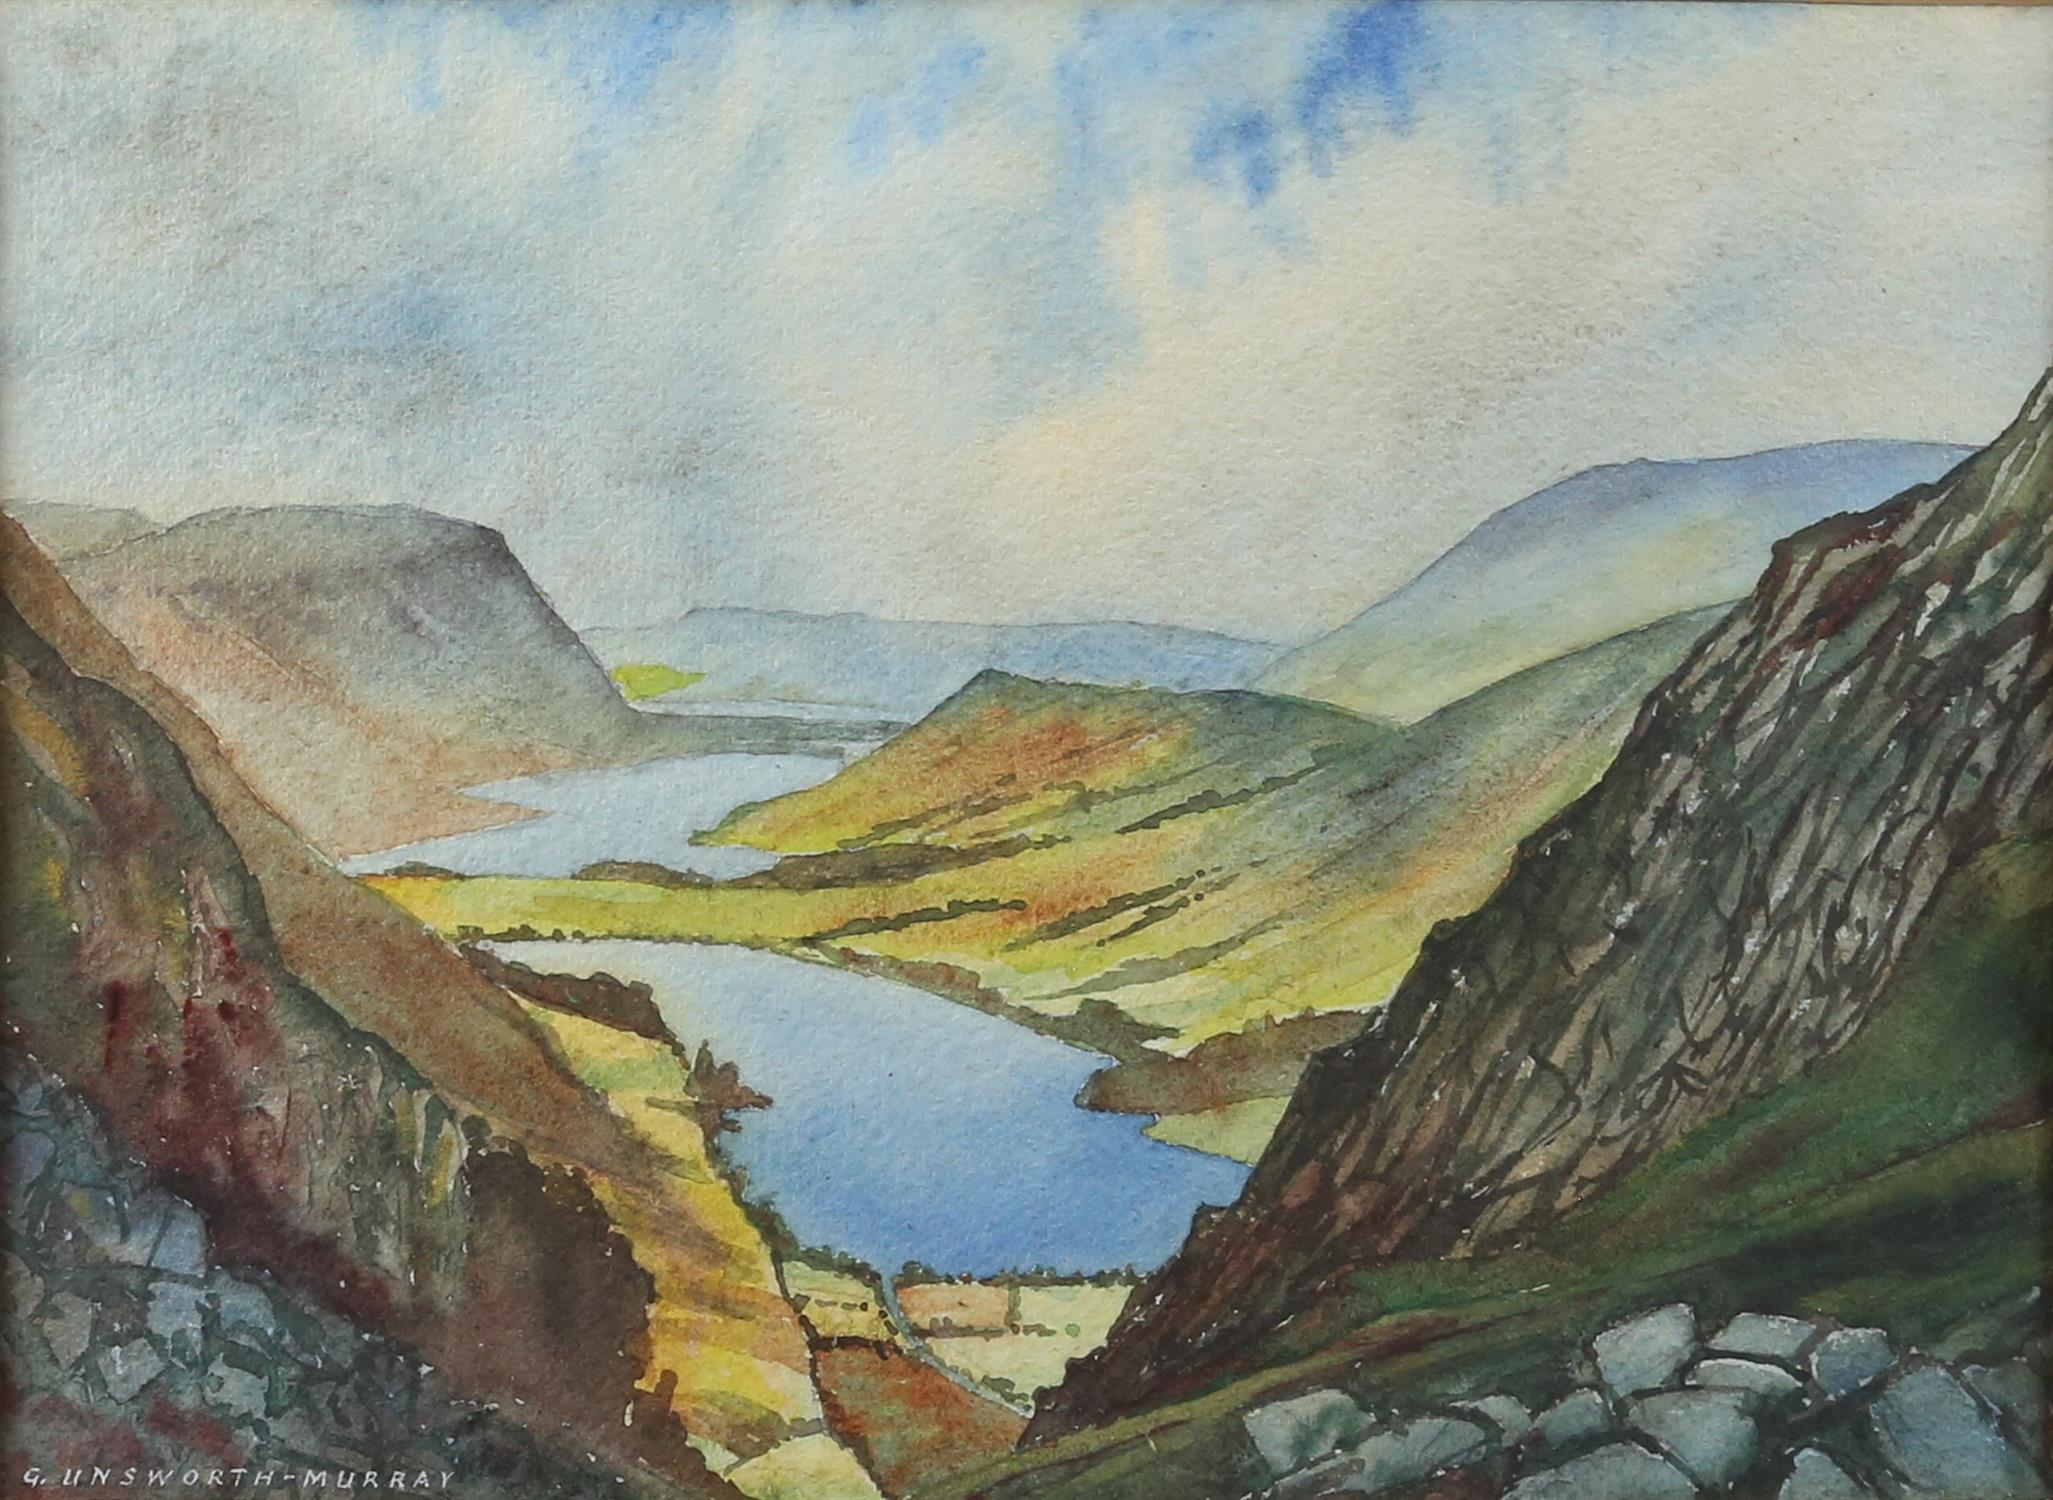 G Unsworth-Murray, British 20th century, 'Buttermere and Crummock Water', signed, watercolour, 26.